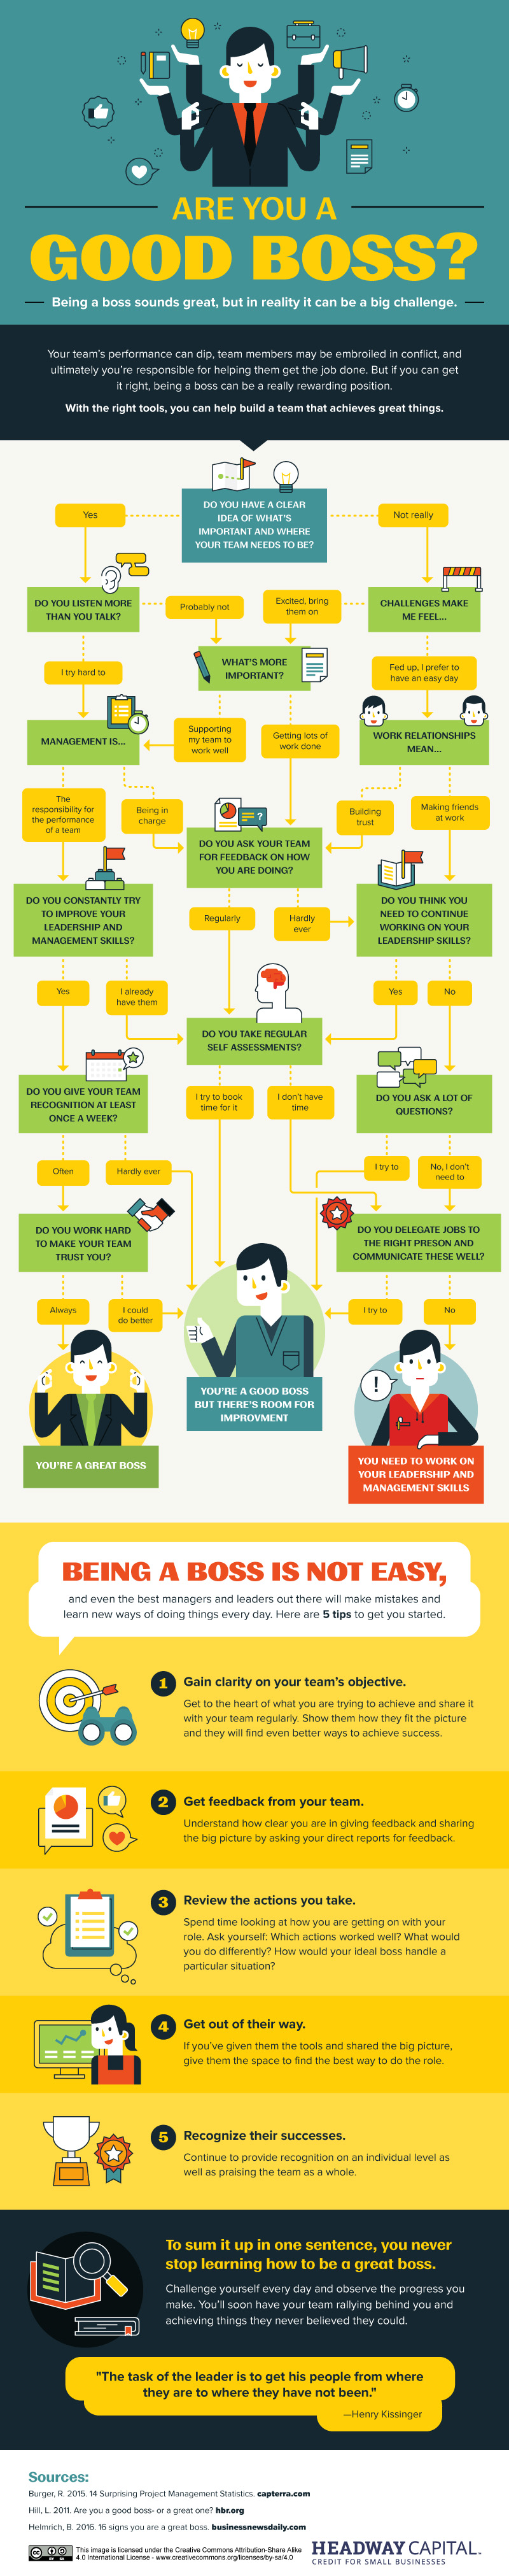 Are You A Good Boss? [Infographic]